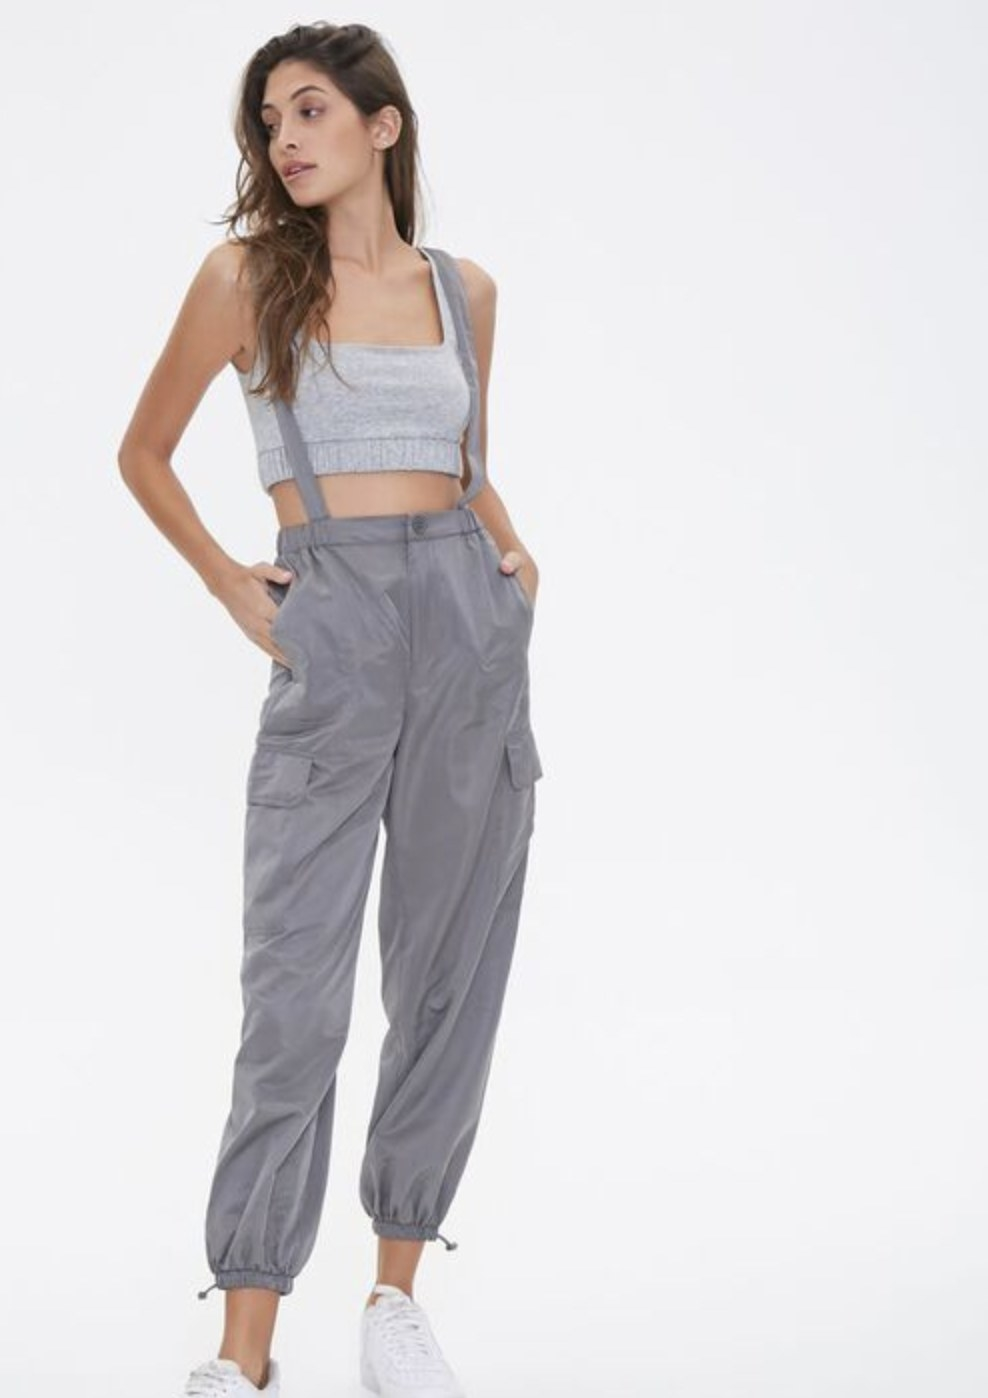 Model is wearing grey overall joggers and a top